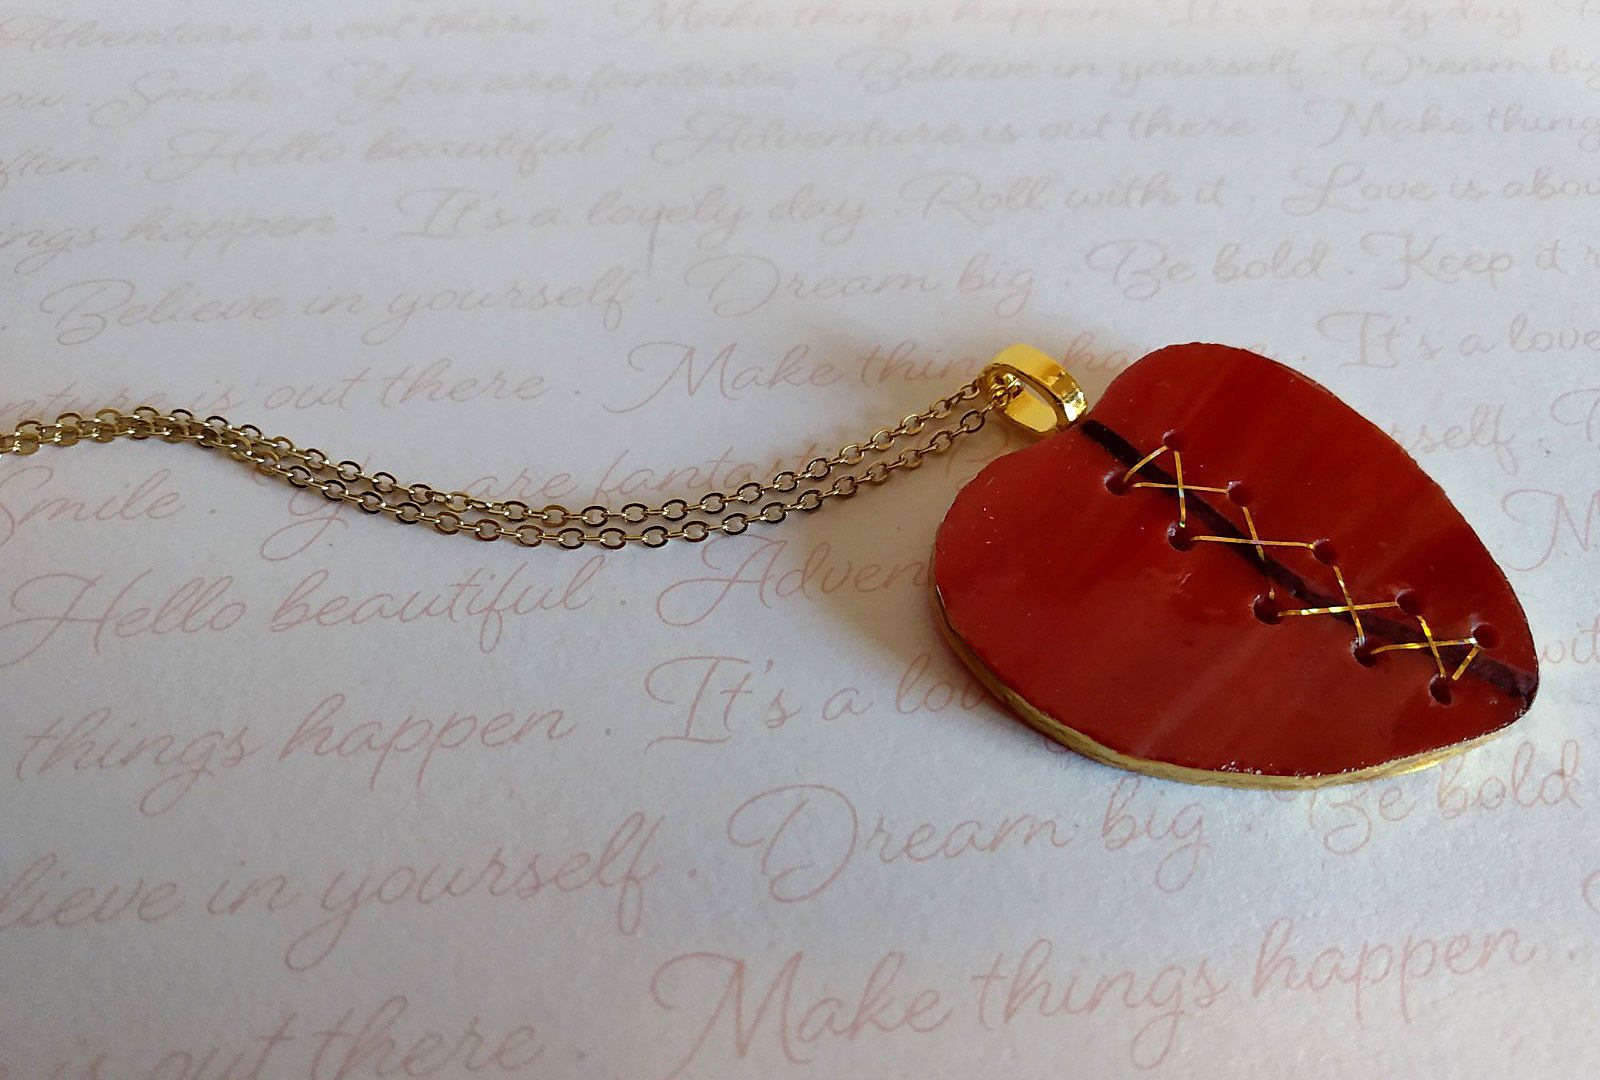 Cosmos Heart Necklace.jpg